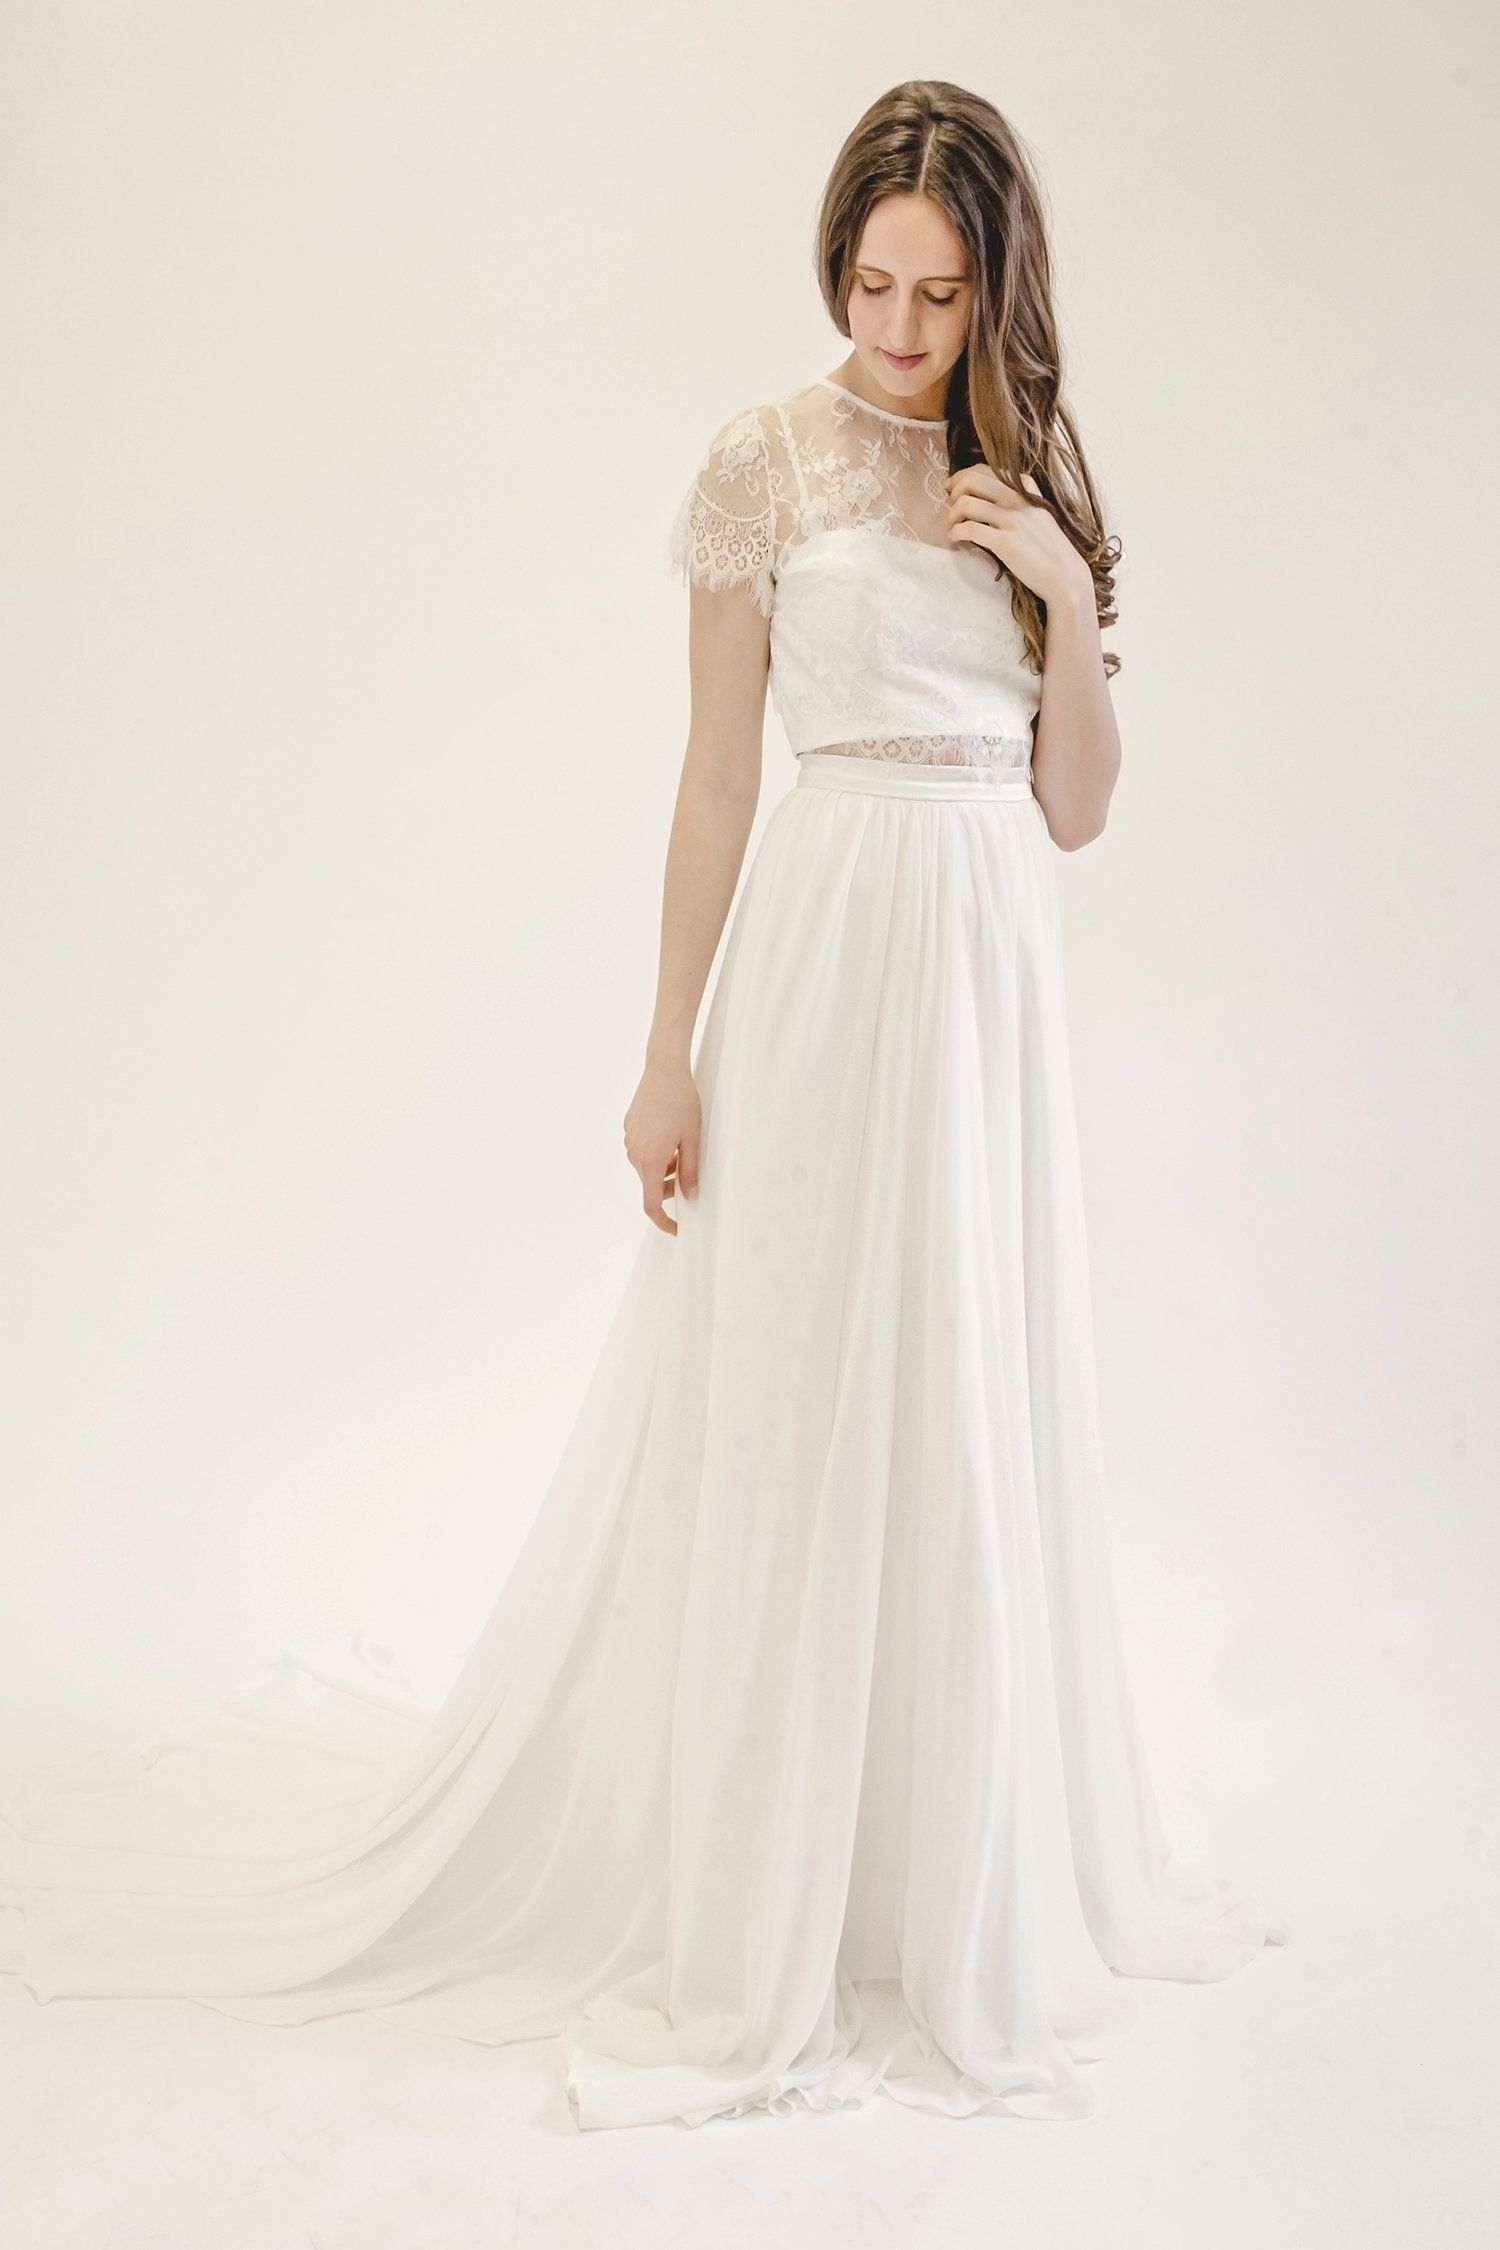 Emily chiffon skirt and lace crop top three piece